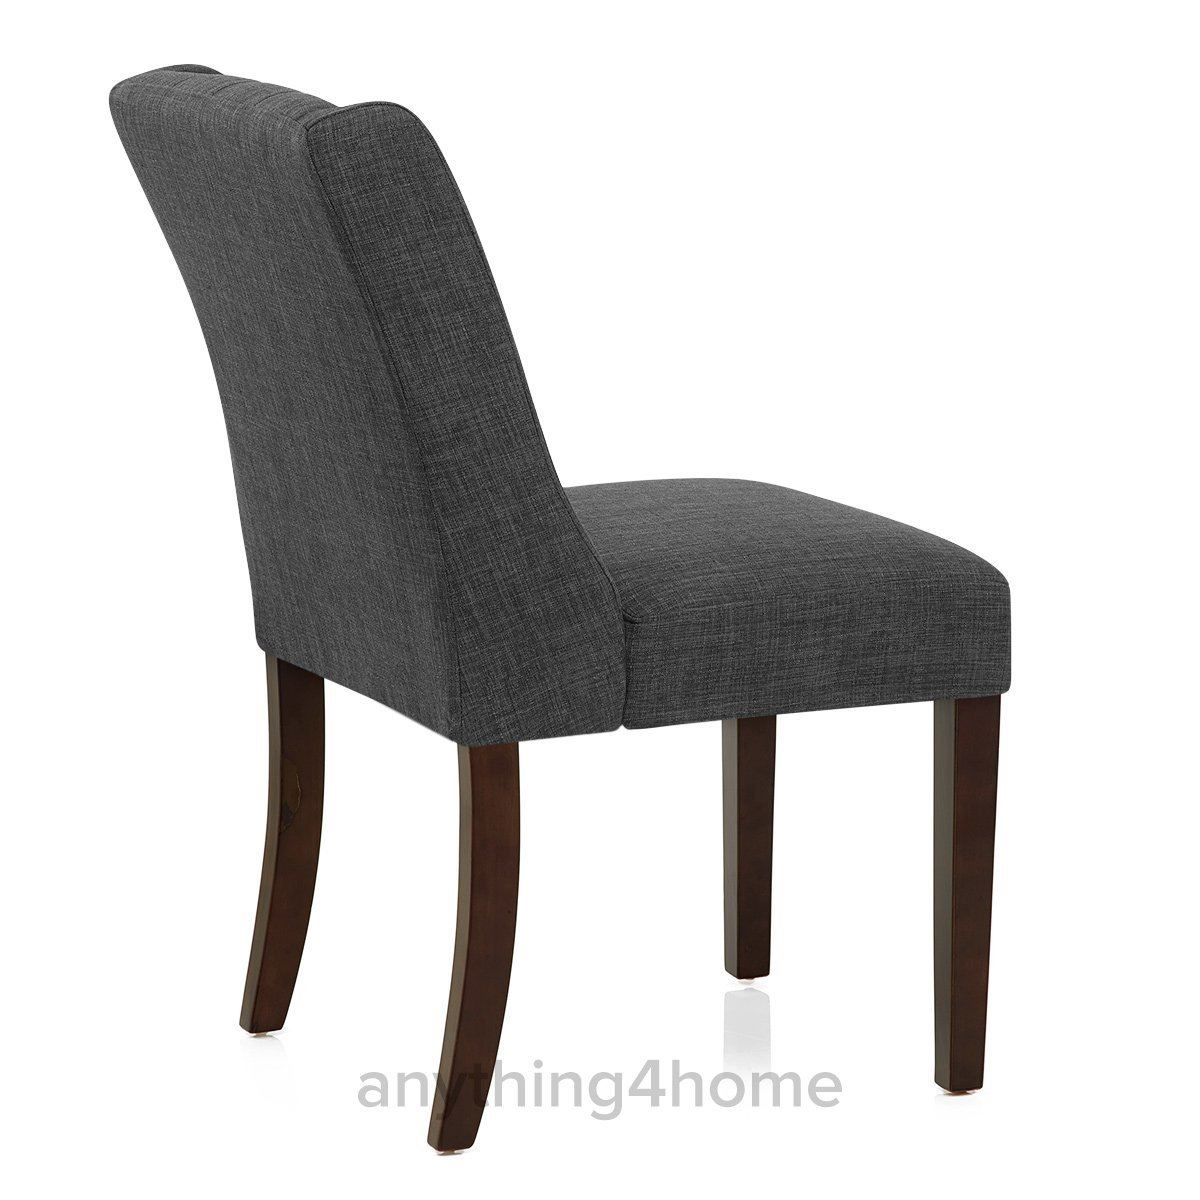 Very Impressive portraiture of   Contemporary Dining Seat Feature Buttoned Chair with Wooden Legs with #5B4E41 color and 1200x1200 pixels